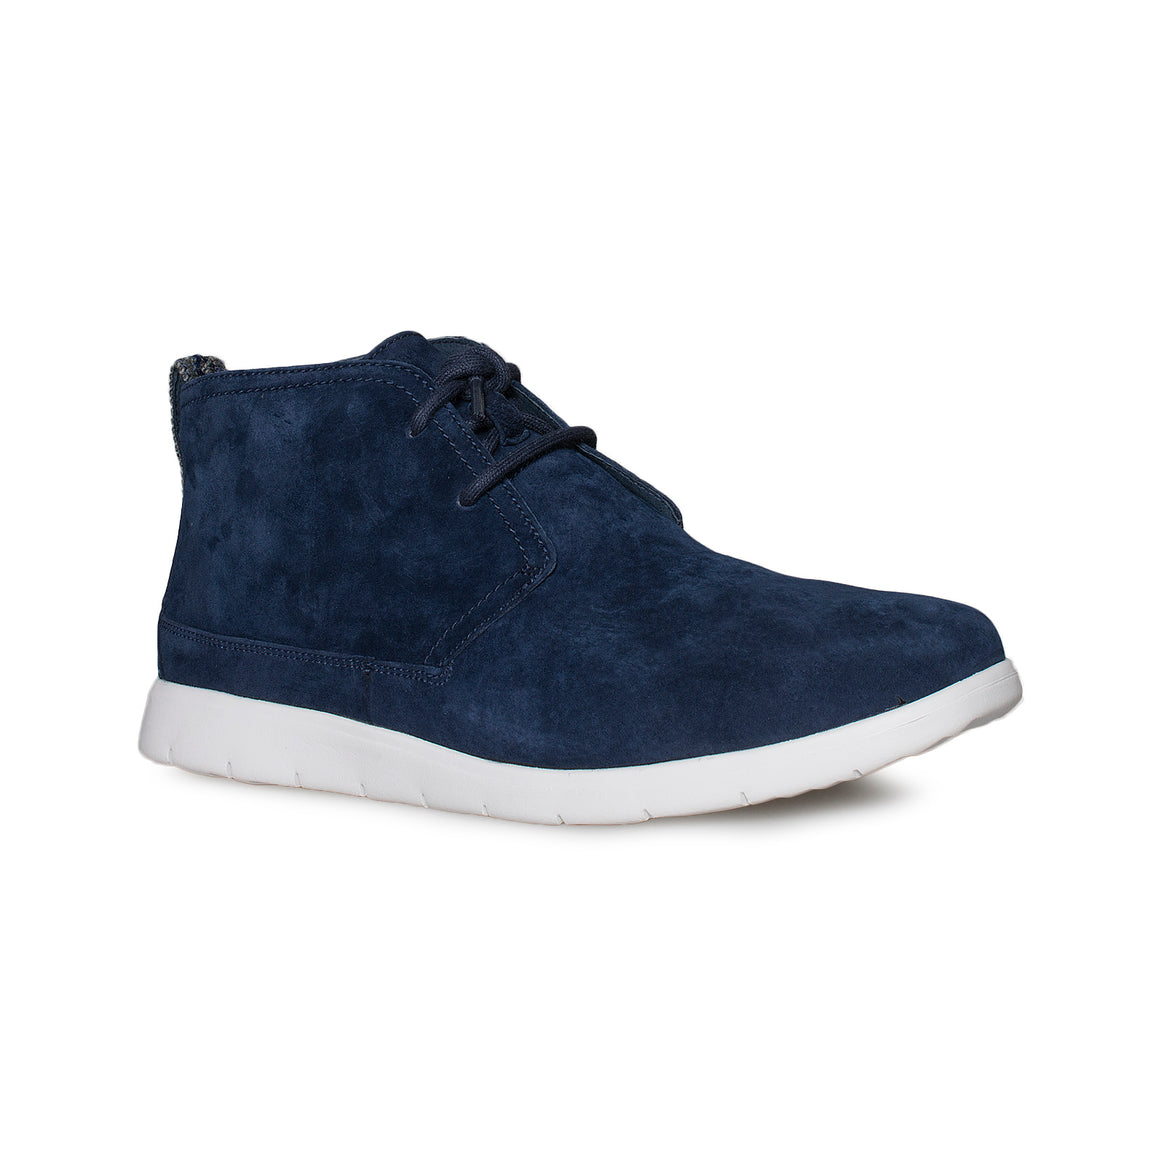 UGG Freamon New Navy Shoes - Men's